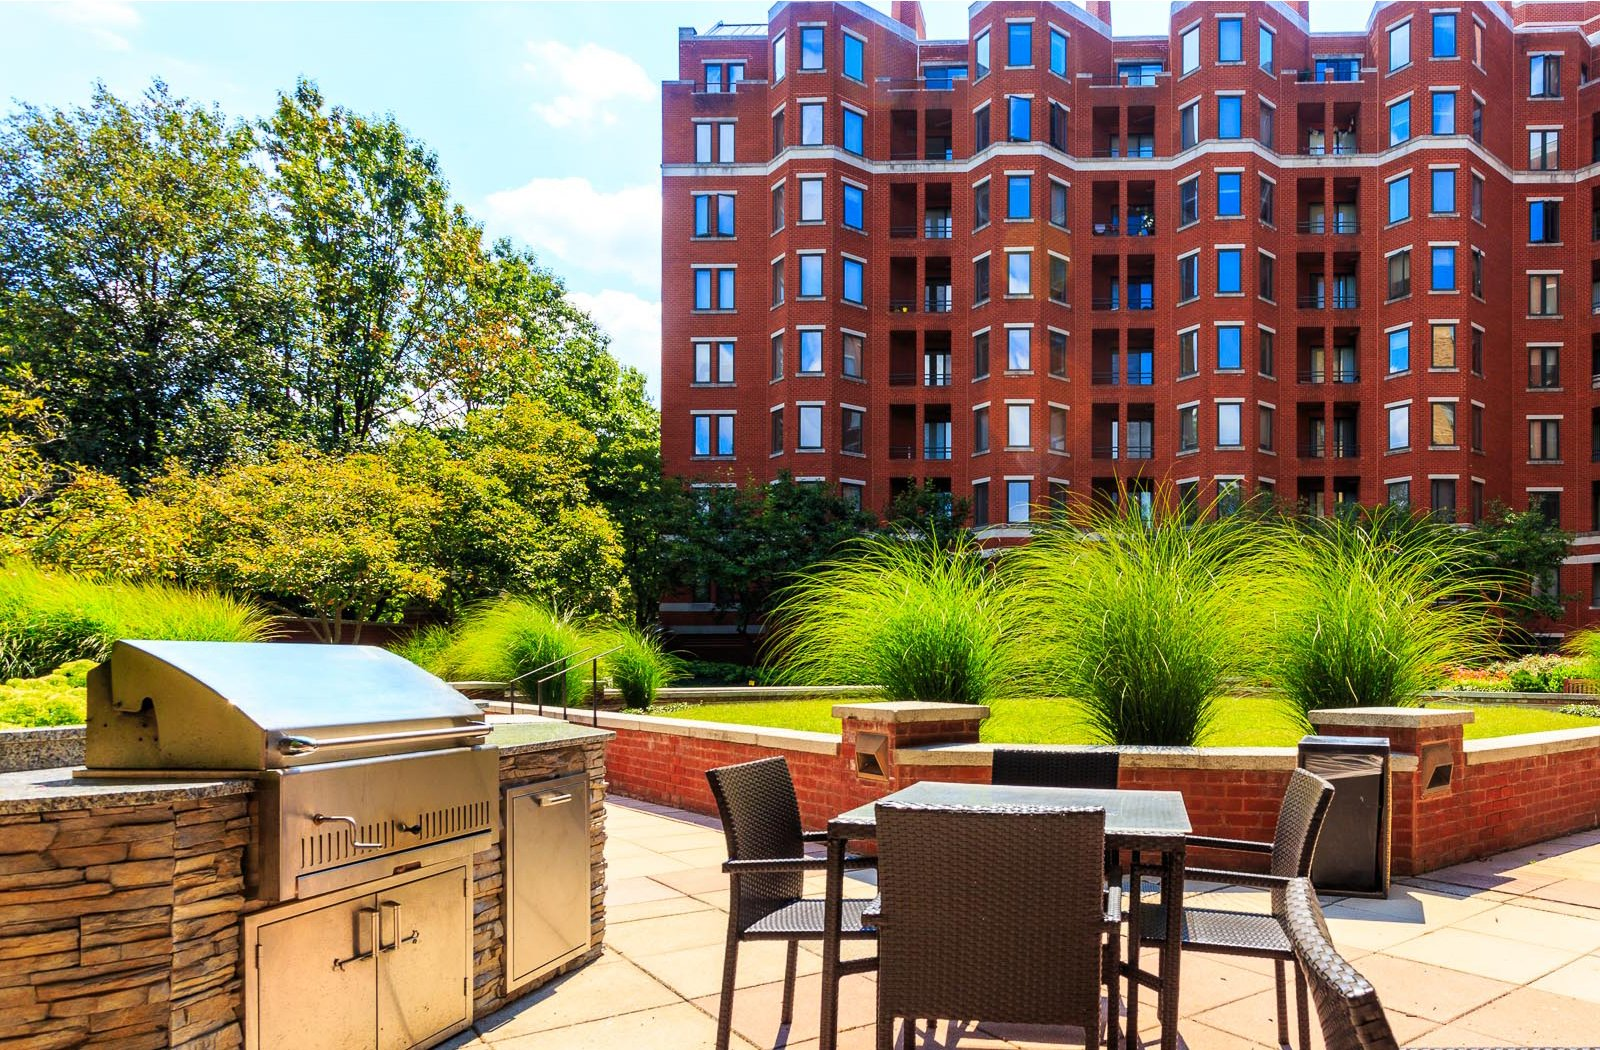 Picnic And BBQ Area At The Saratoga Apartments, Washington, Washington, D.C.